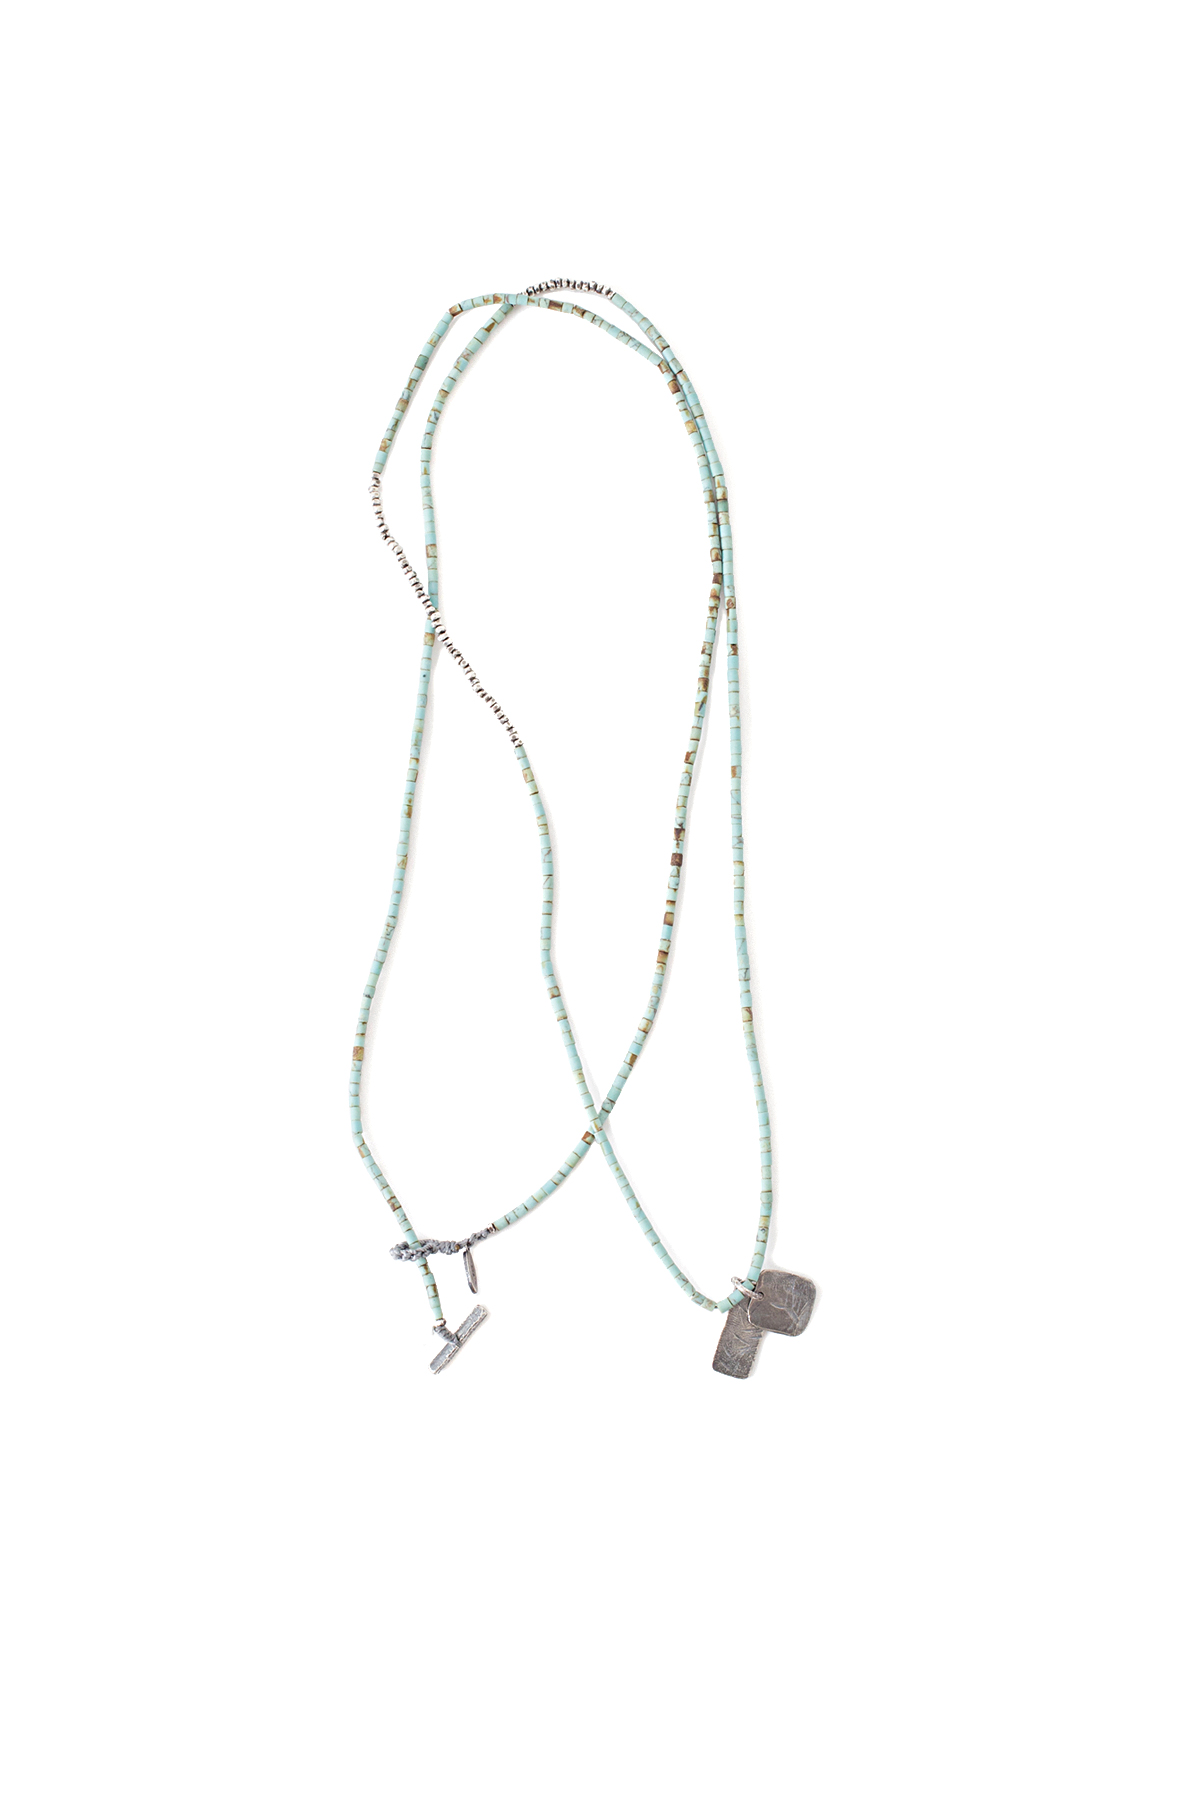 M. Cohen : Horizon Combination Necklace / Bracelet (Trq)